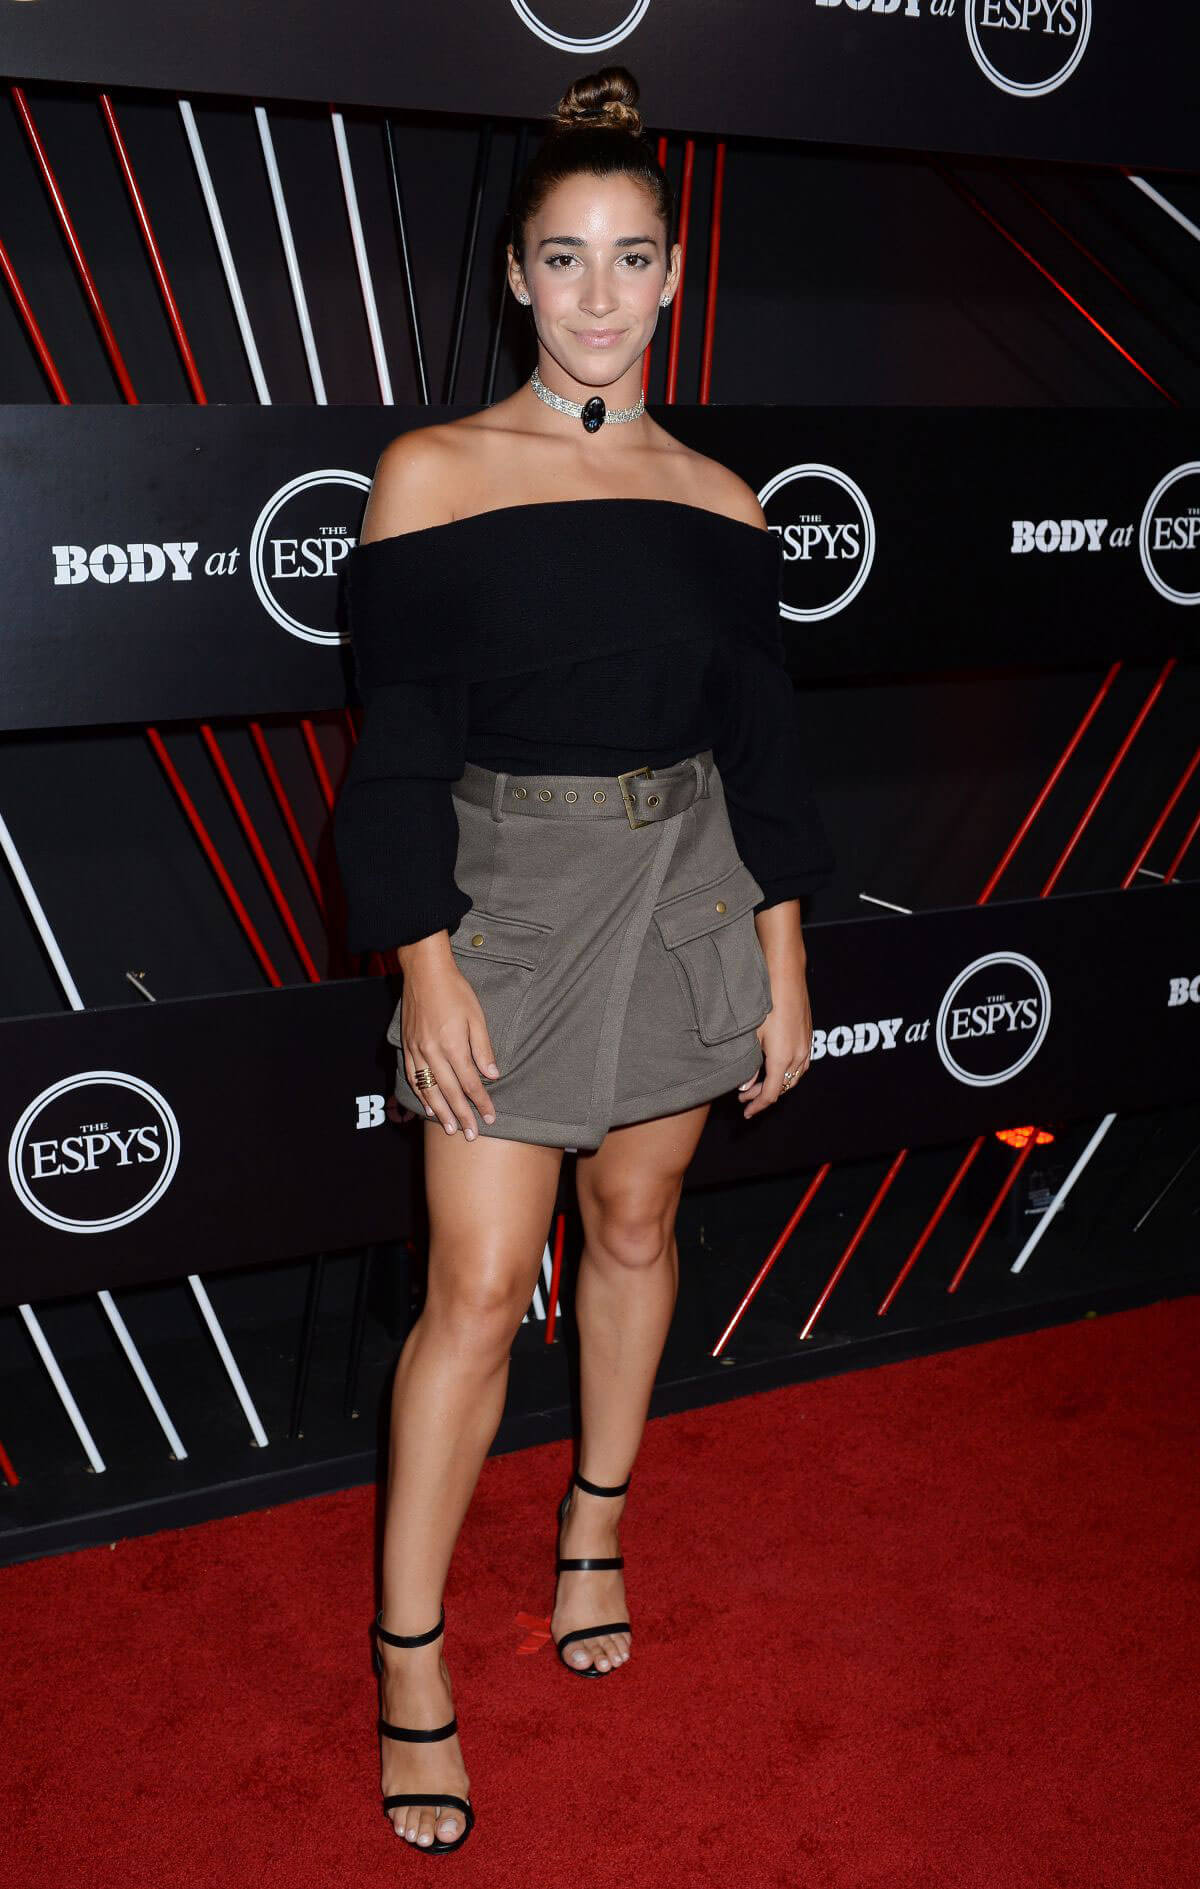 Aly Raisman Stills at Body at Espys Party in Hollywood